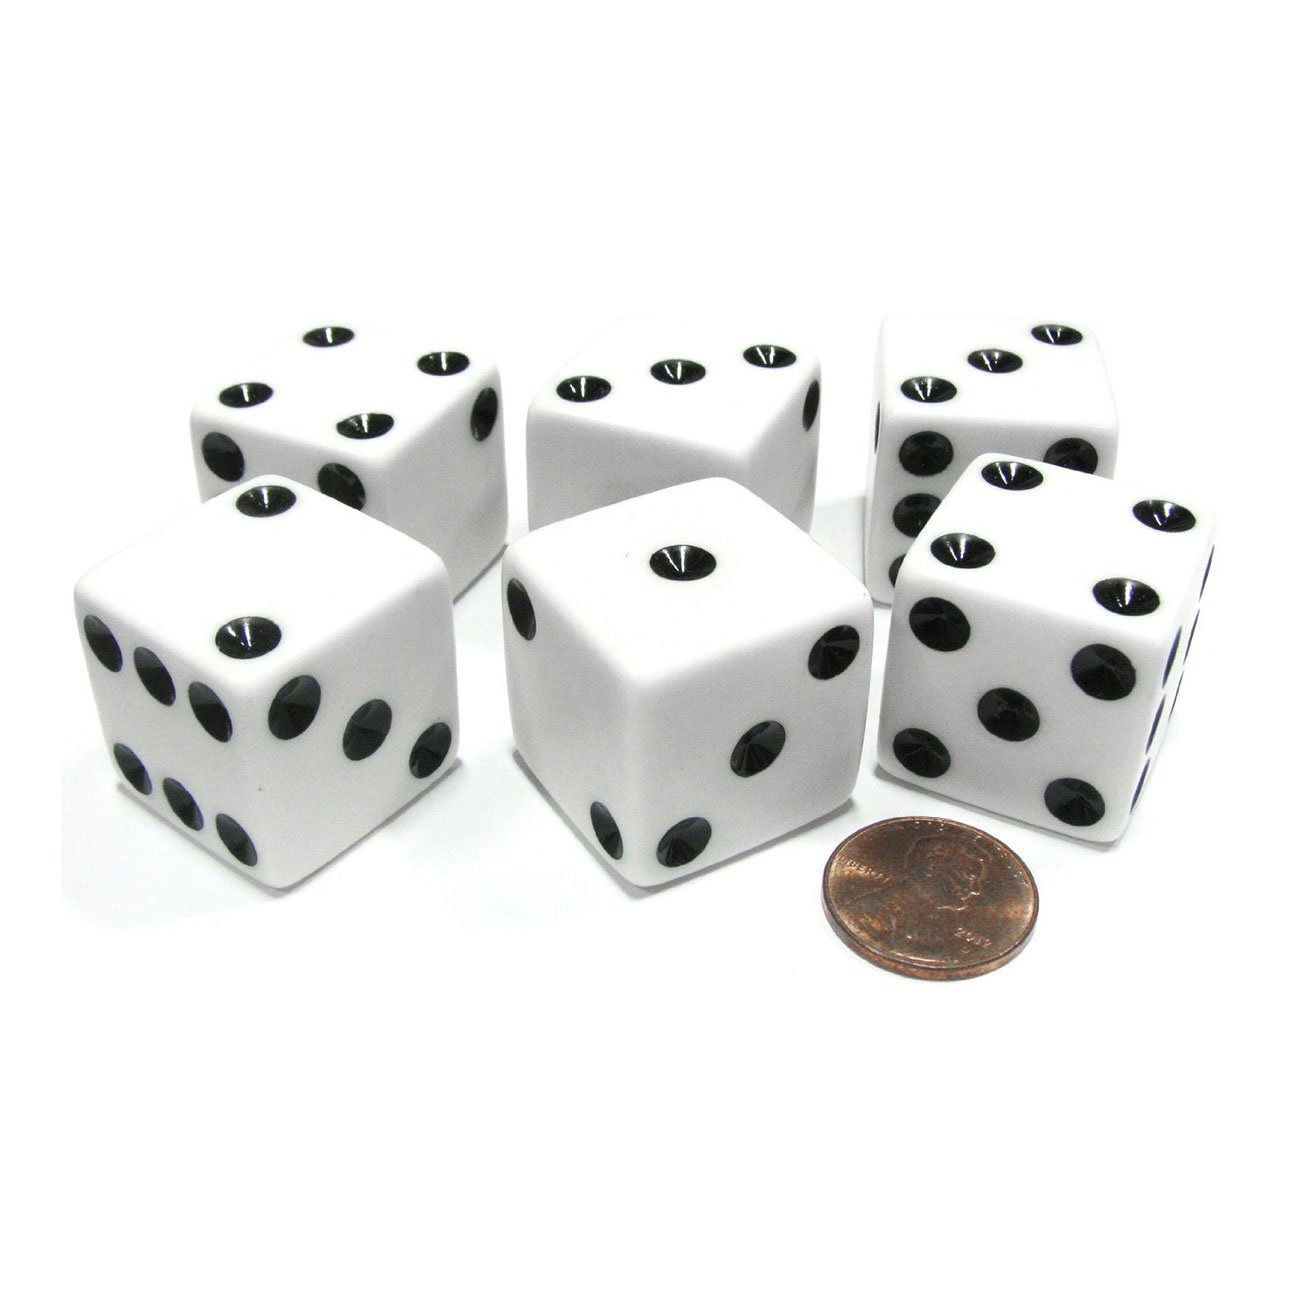 100Pcs D6 Dot Dice 14mm For Board Games Activity Casino Theme Party Games